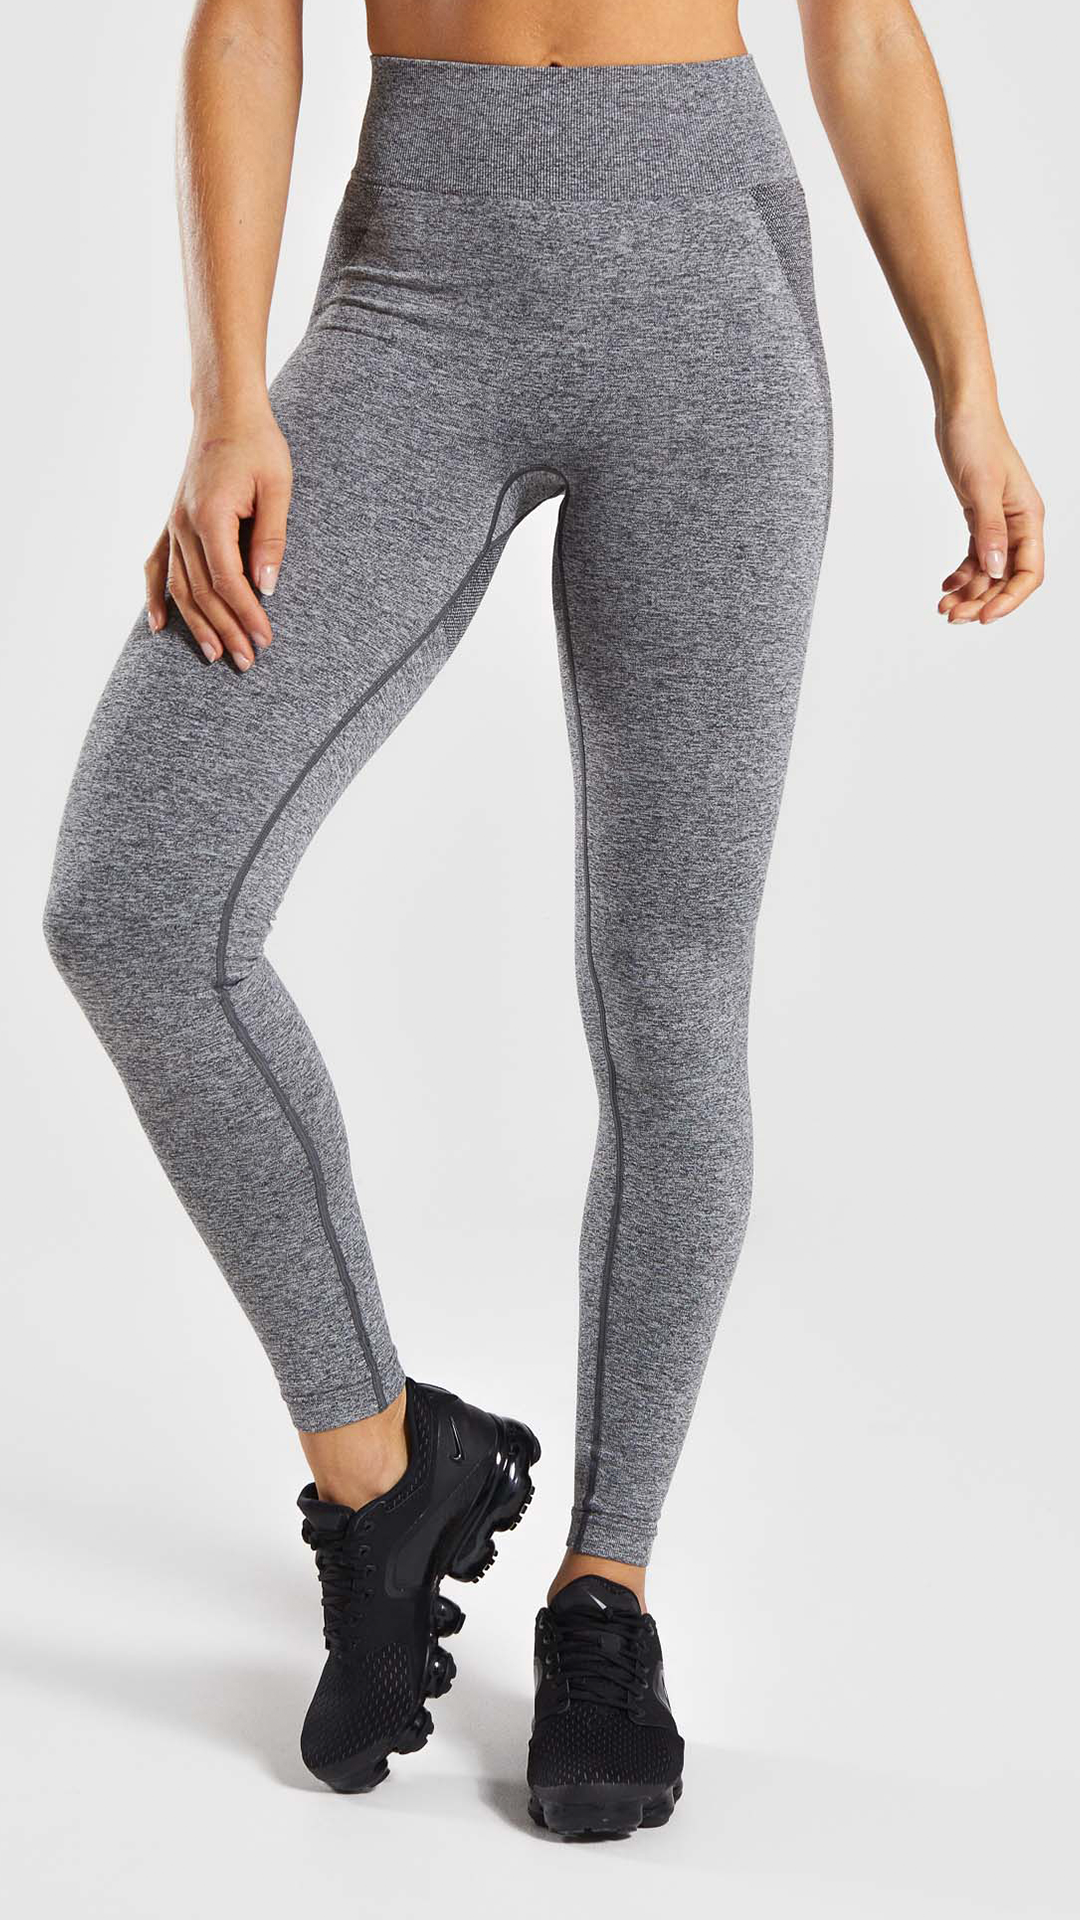 b387b3bdca82e The Flex High Waisted Leggings, Charcoal Marl/ Dusky Pink. The awaited  favourite Flex style in a high waisted design. With branding to the back  and seamless ...